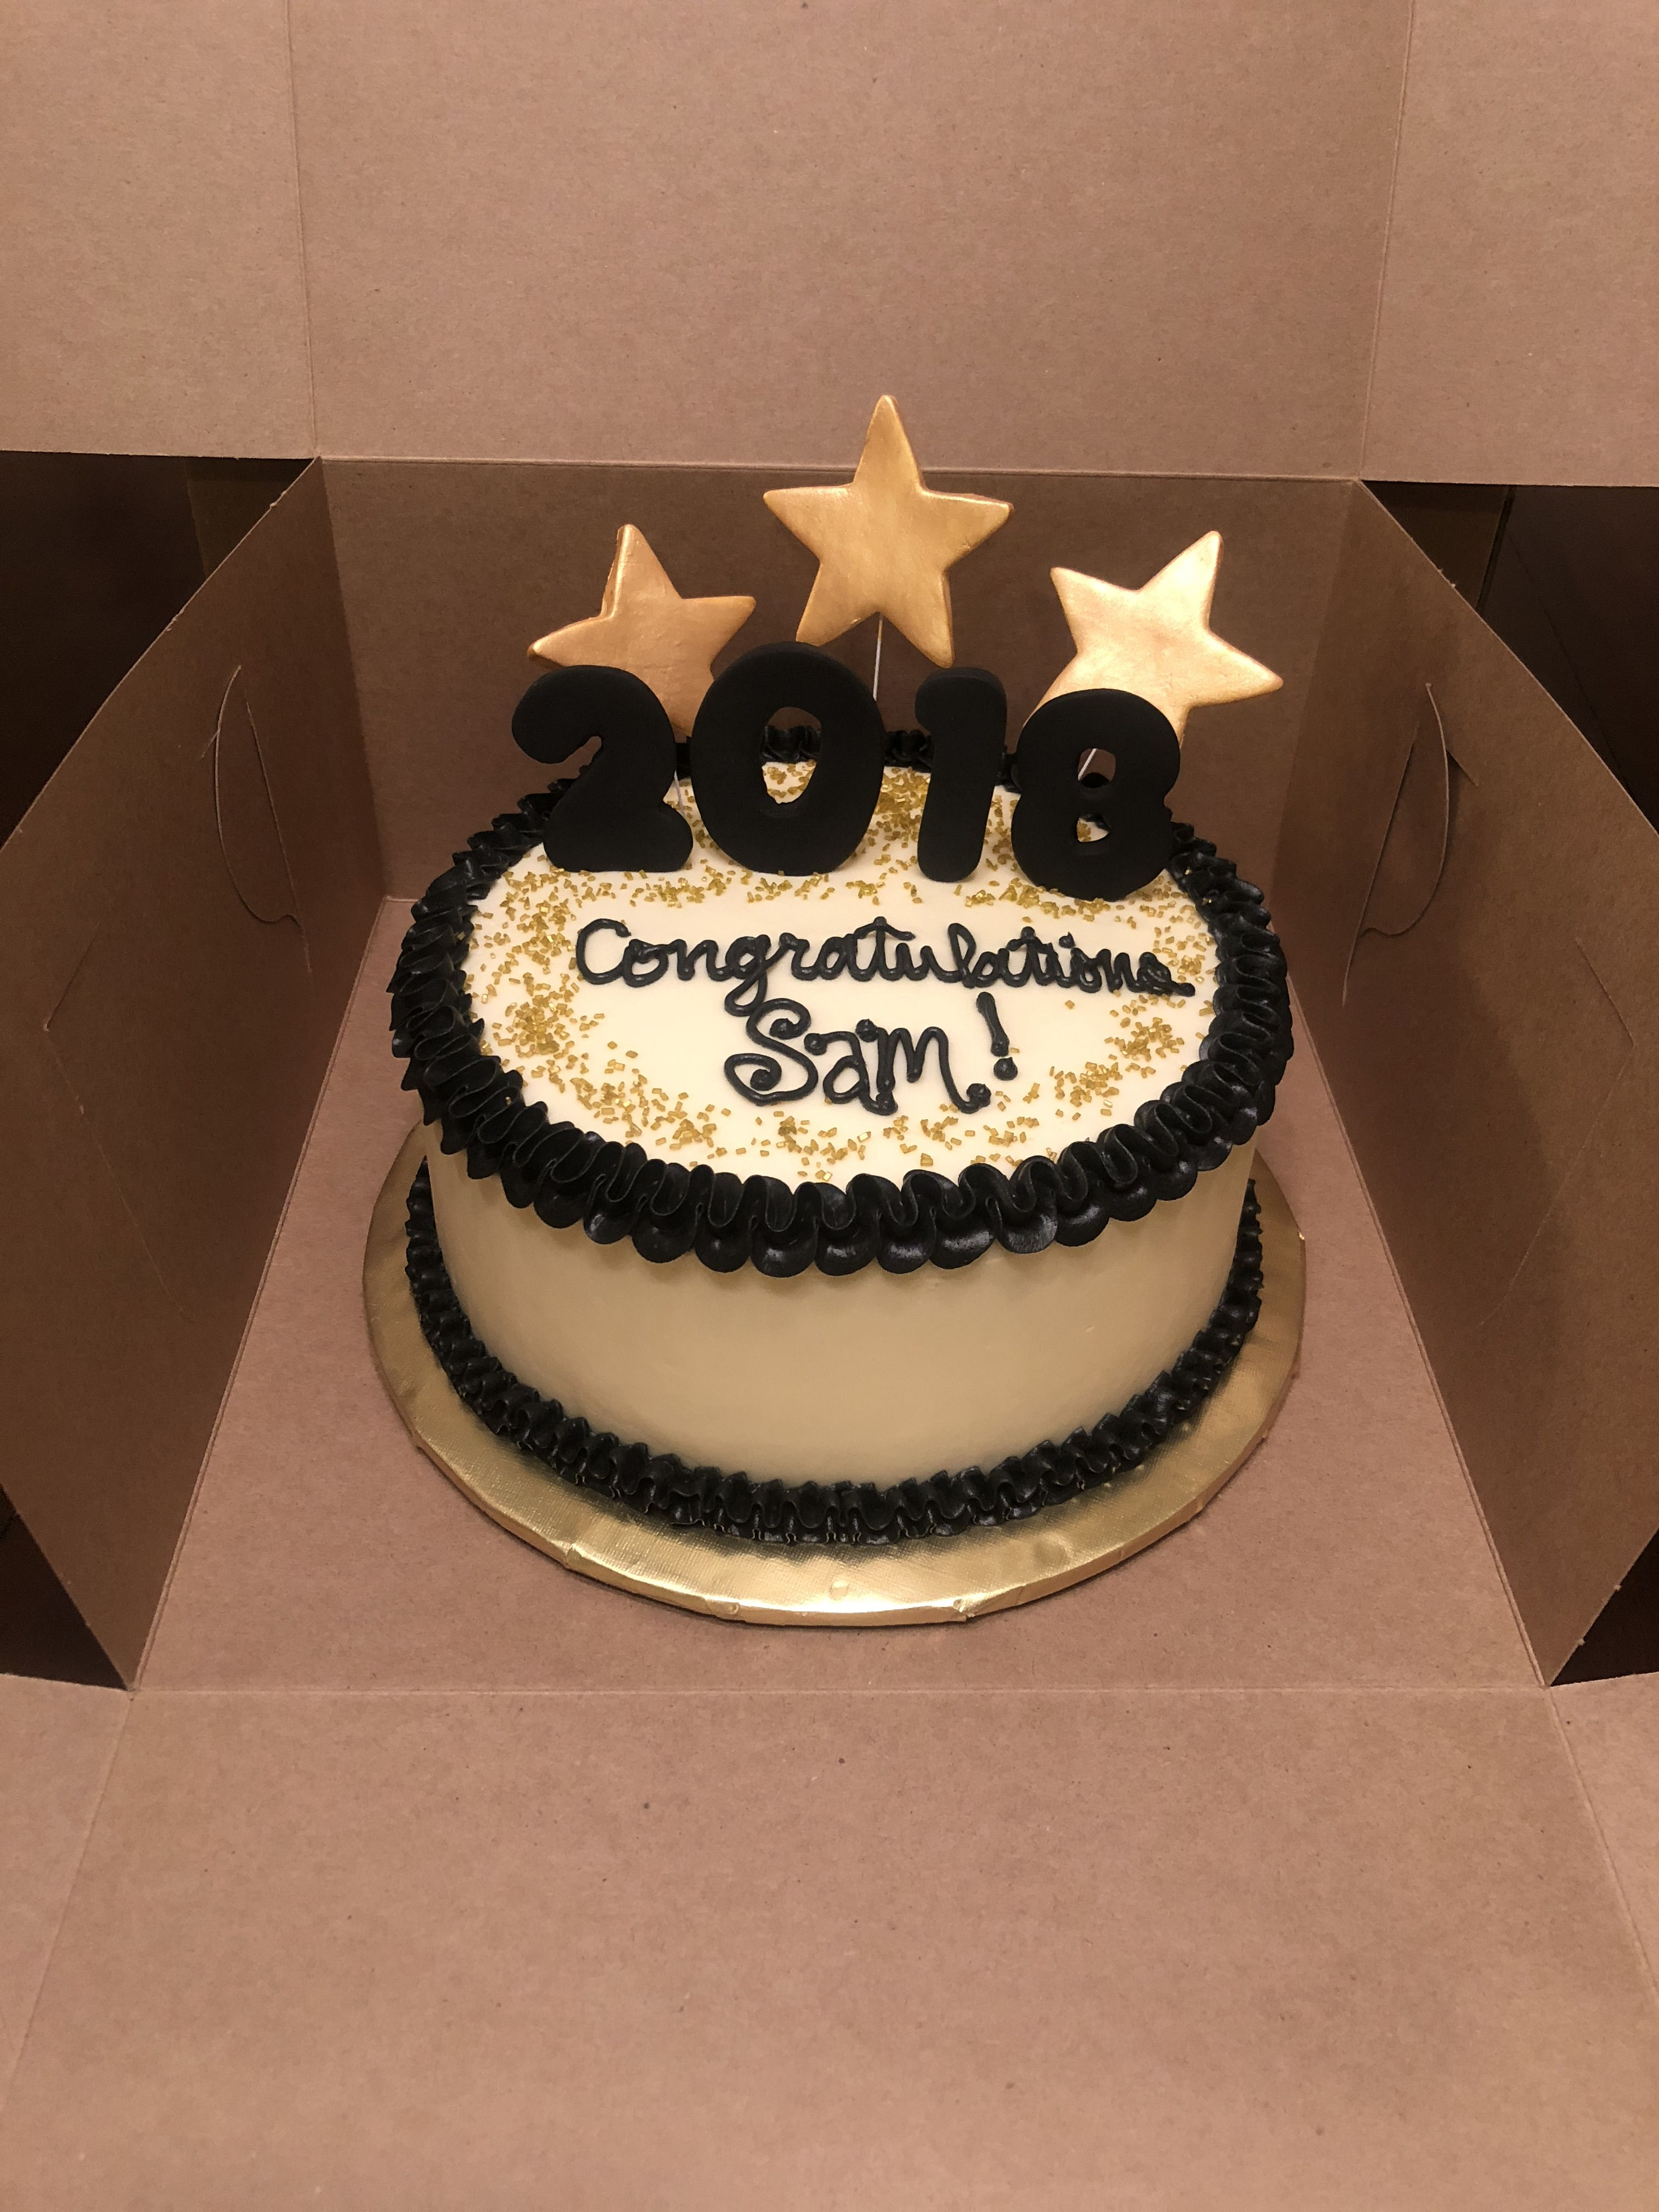 Congratulations Sam This Black And Gold Themed Cake Was For A